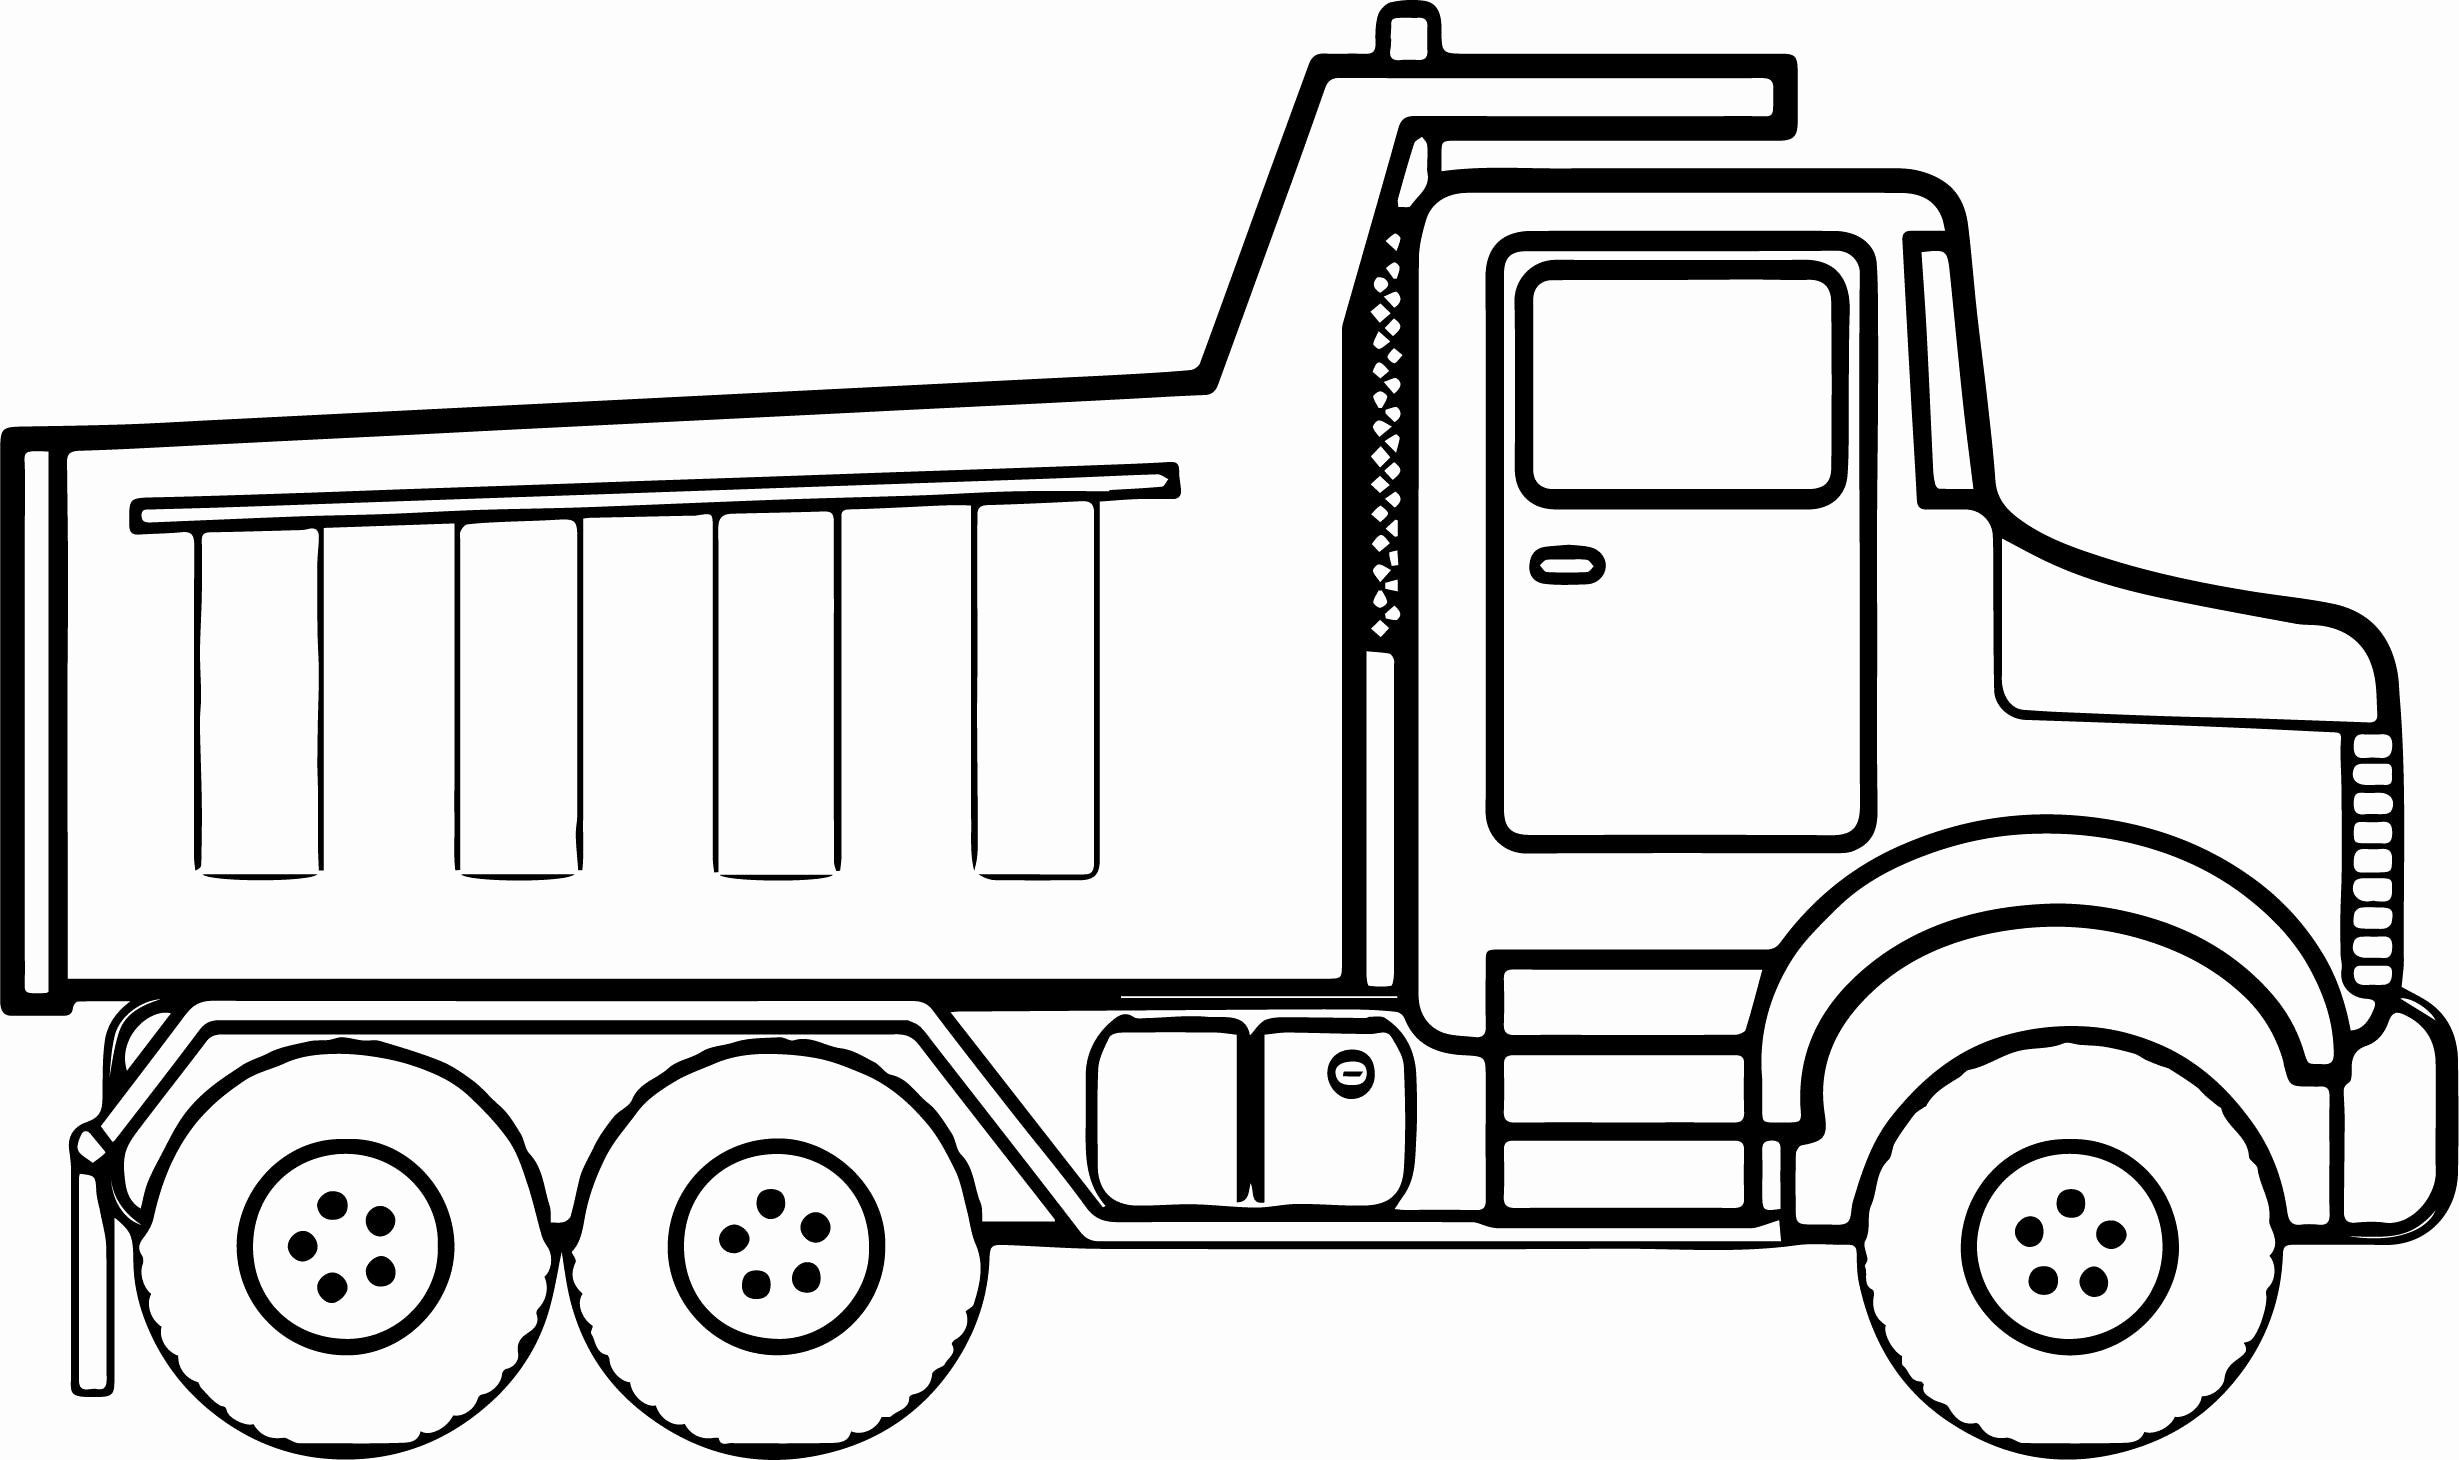 Free Coloring Pages Trucks Unique Luxury Flat Bed Coloring Pages Lovespells In 2020 Monster Truck Coloring Pages Truck Coloring Pages Cars Coloring Pages